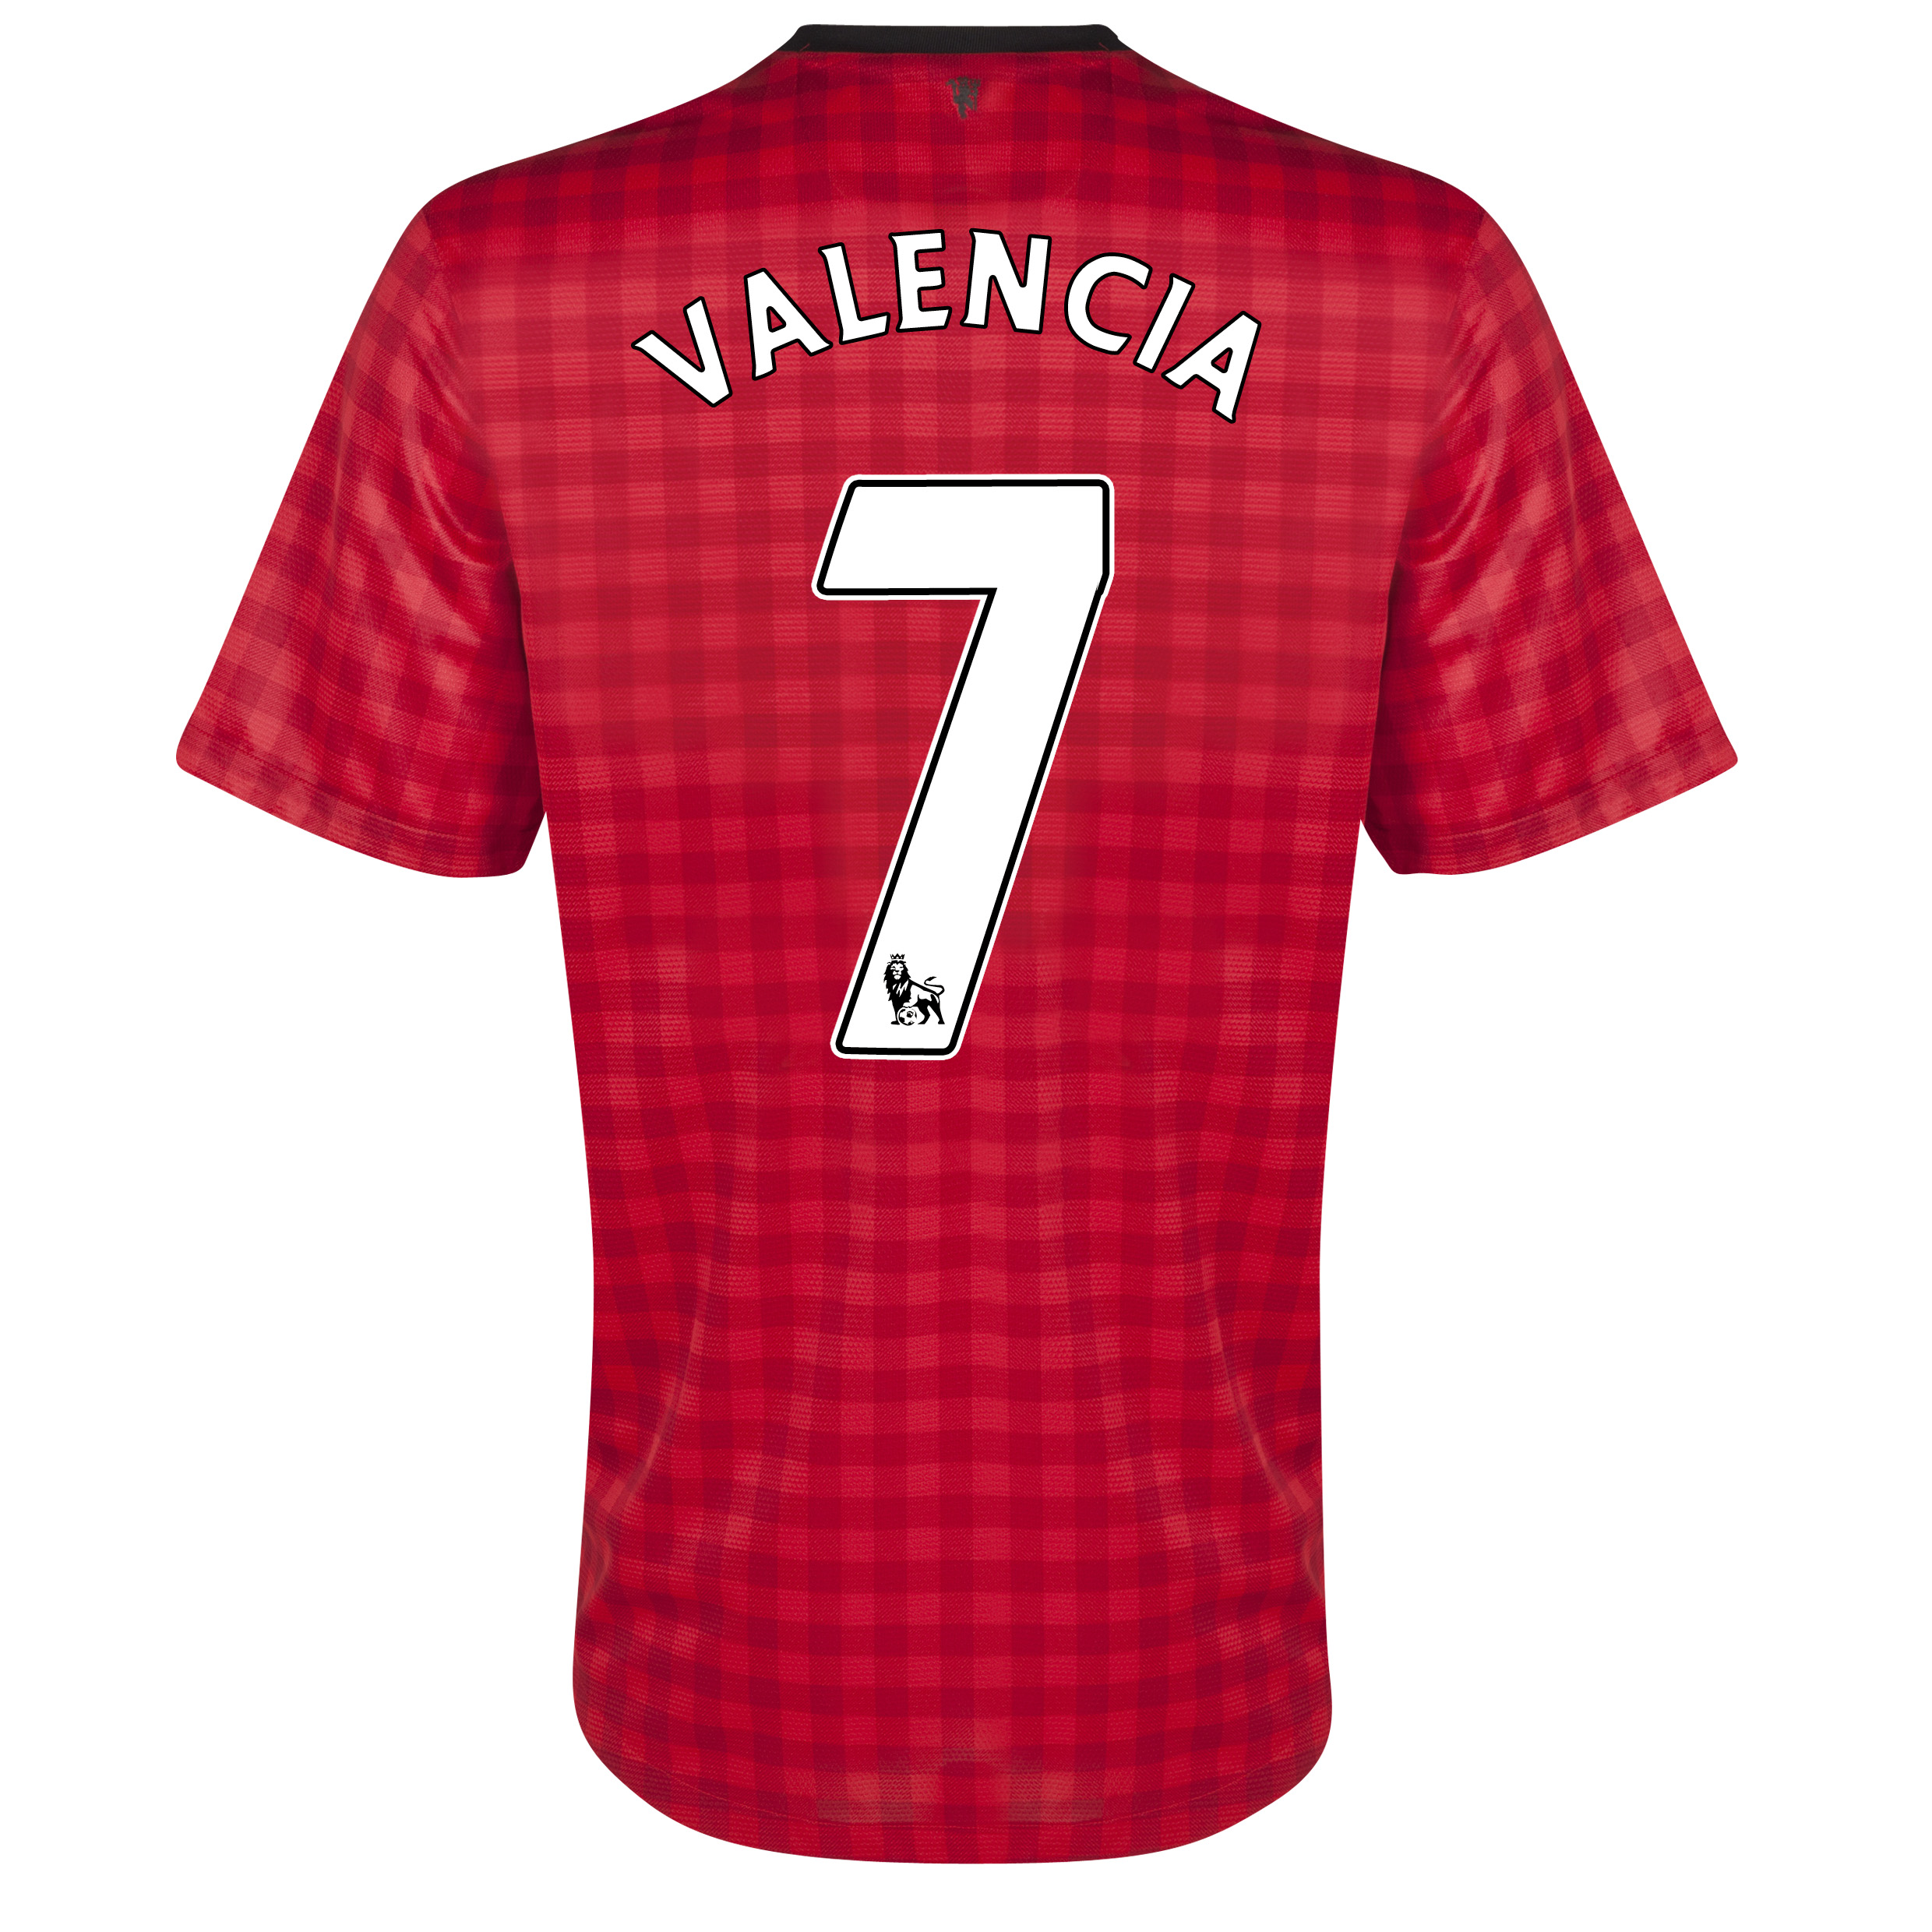 Manchester United Home Shirt 2012/13 with Valencia 7 printing